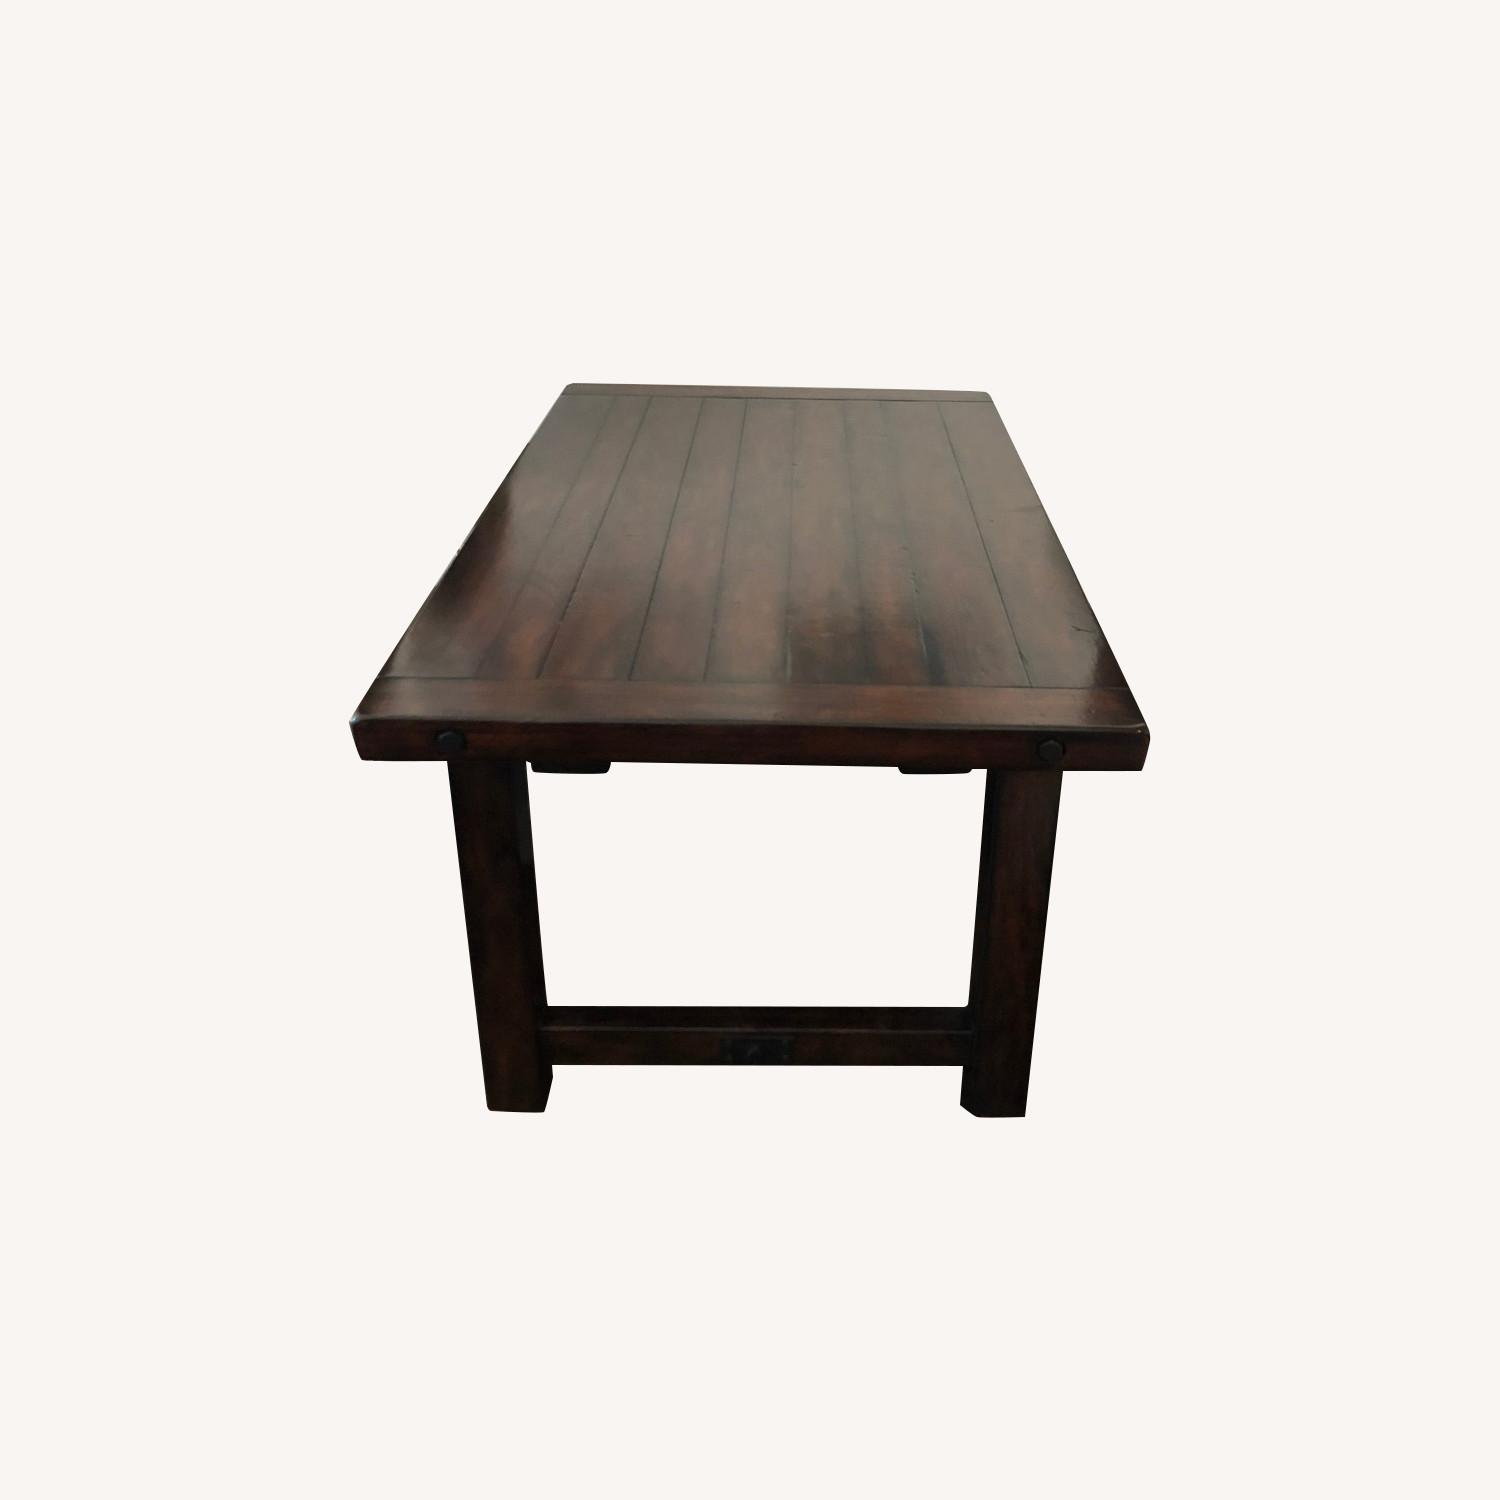 Crate & Barrel Dark Wood Table with Leaf - image-0